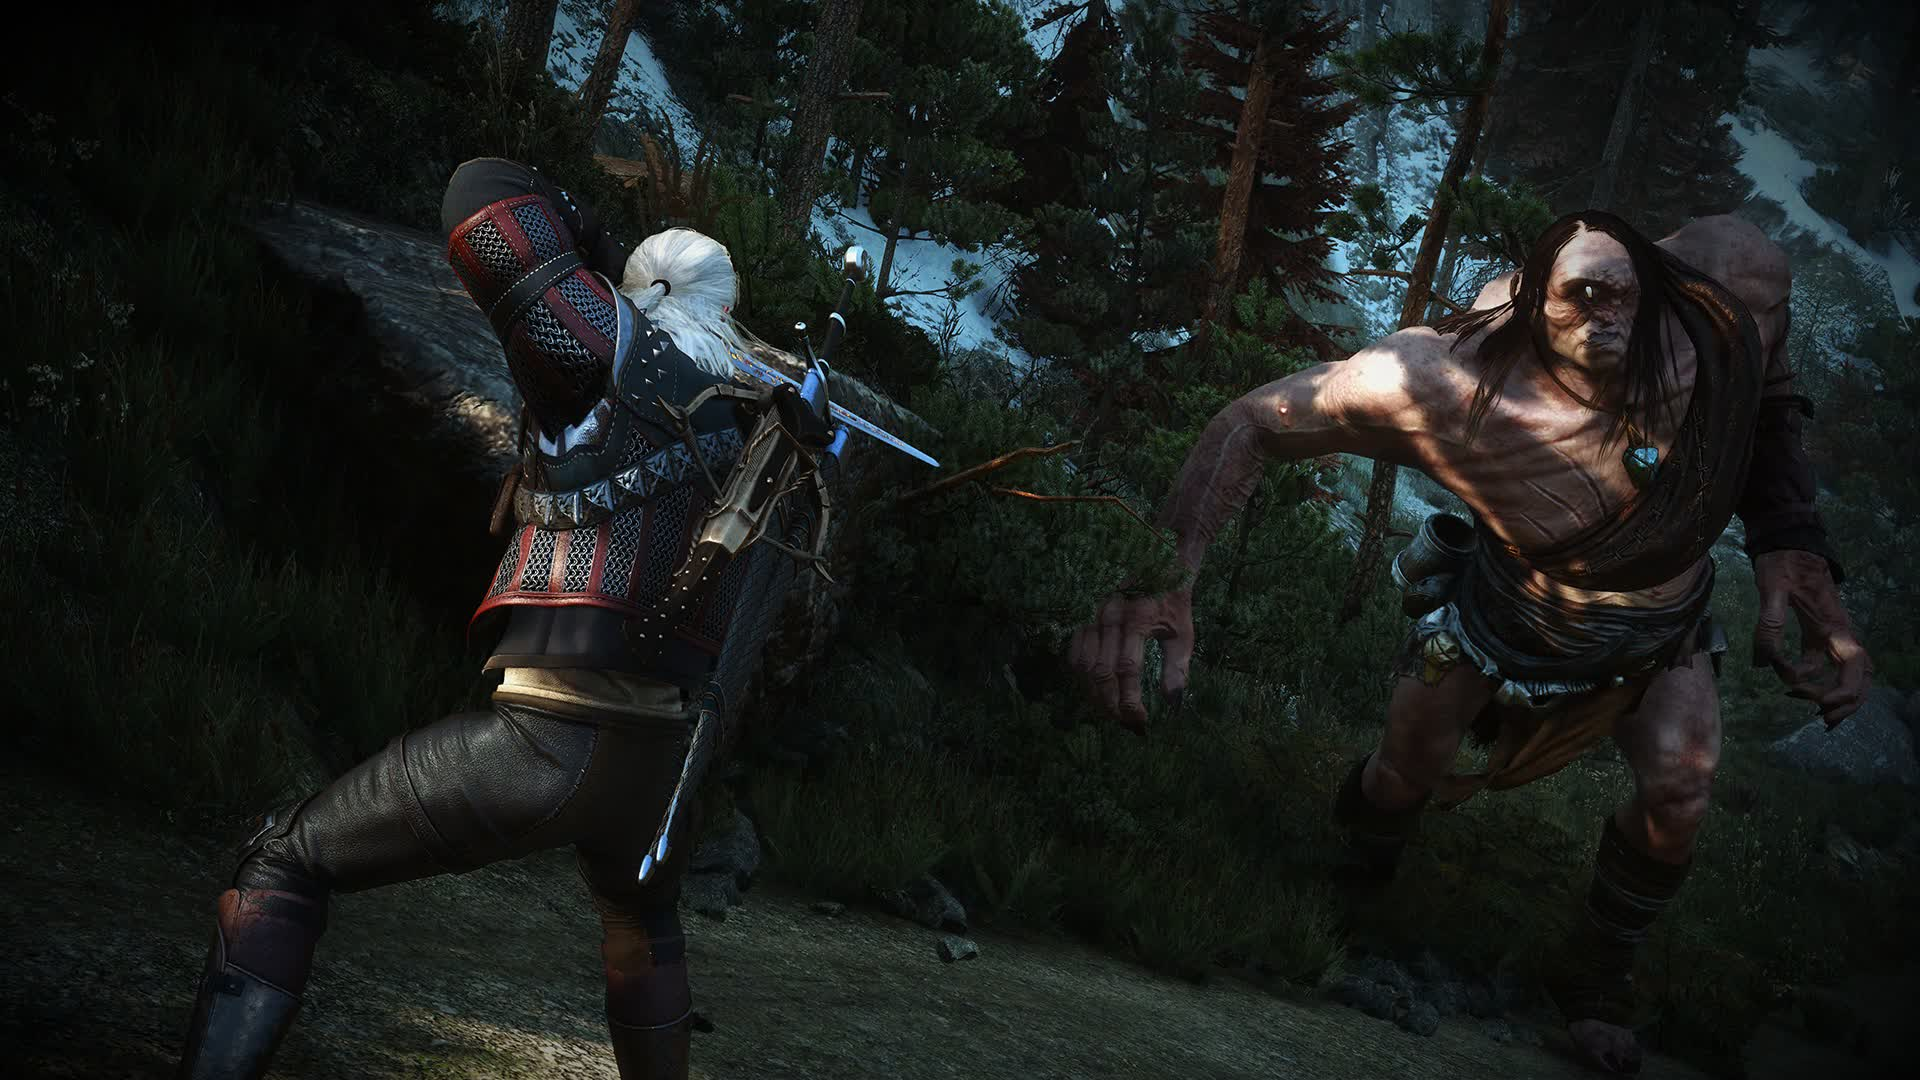 The Witcher 3 is getting a remaster for next-gen platforms, current owners get it for free